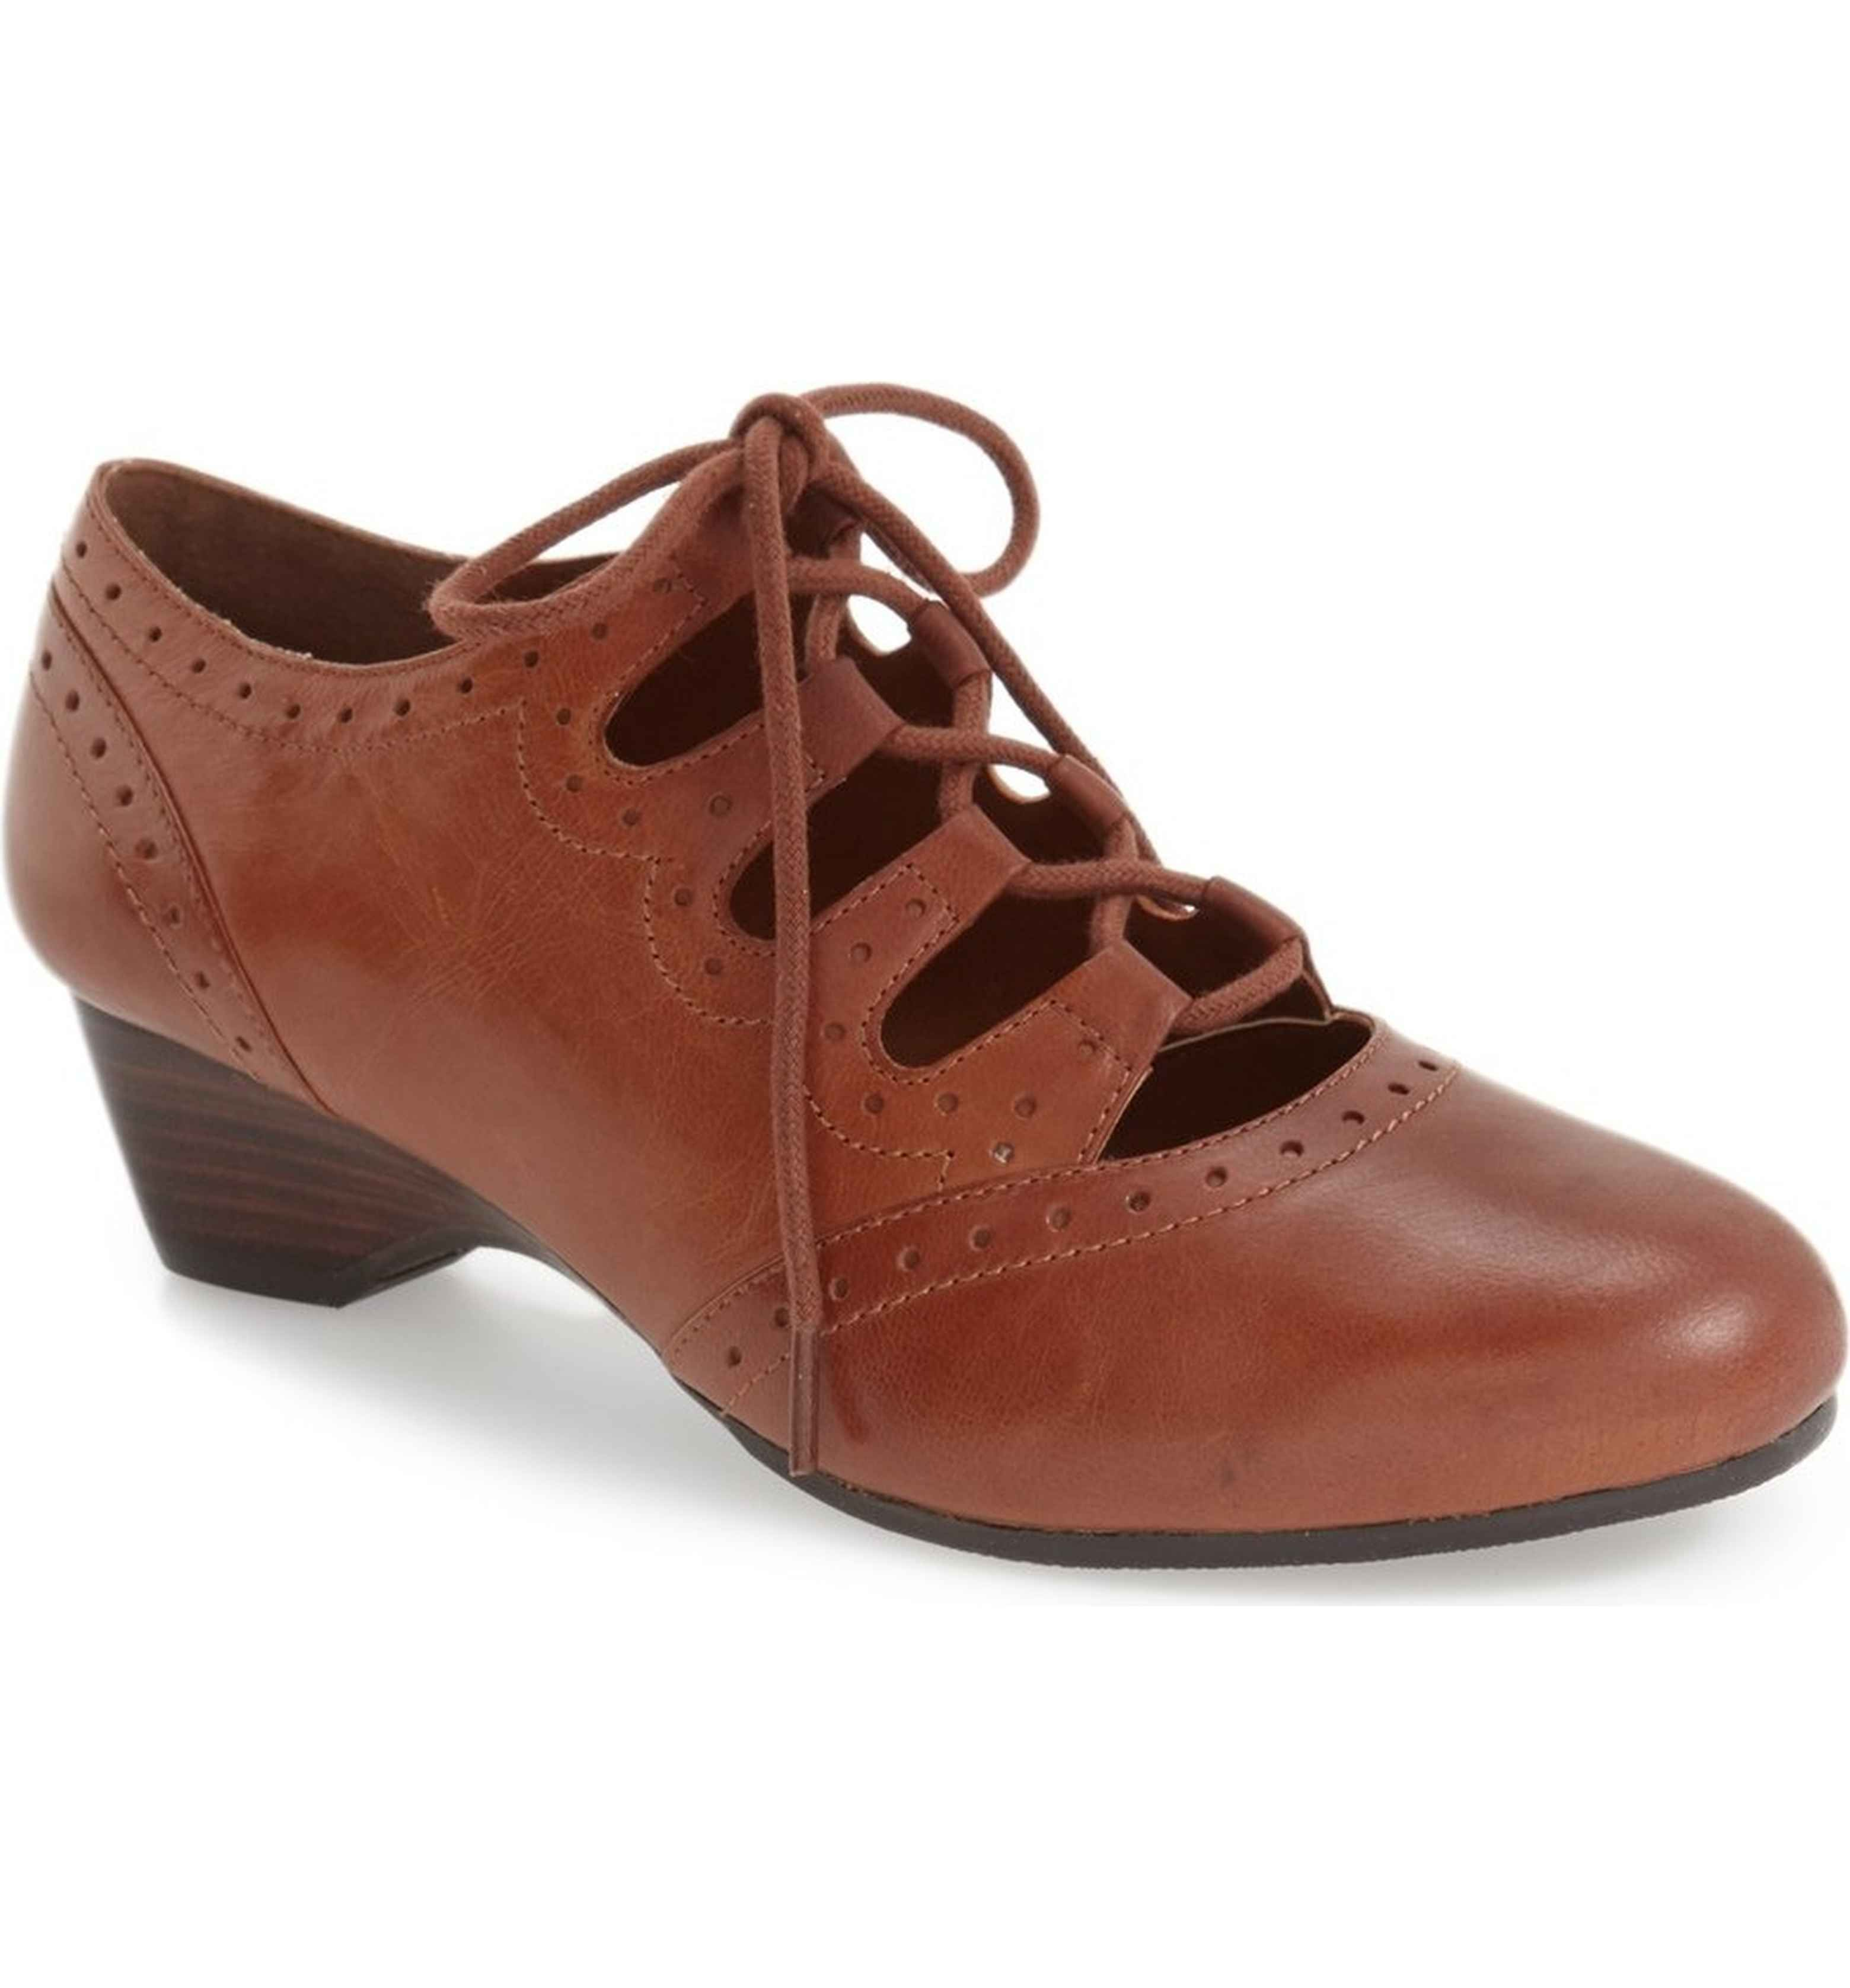 Lowest Prices Posie Ghillie Oxford Women Womens Stone Leather BELLA VITA Womens Flats